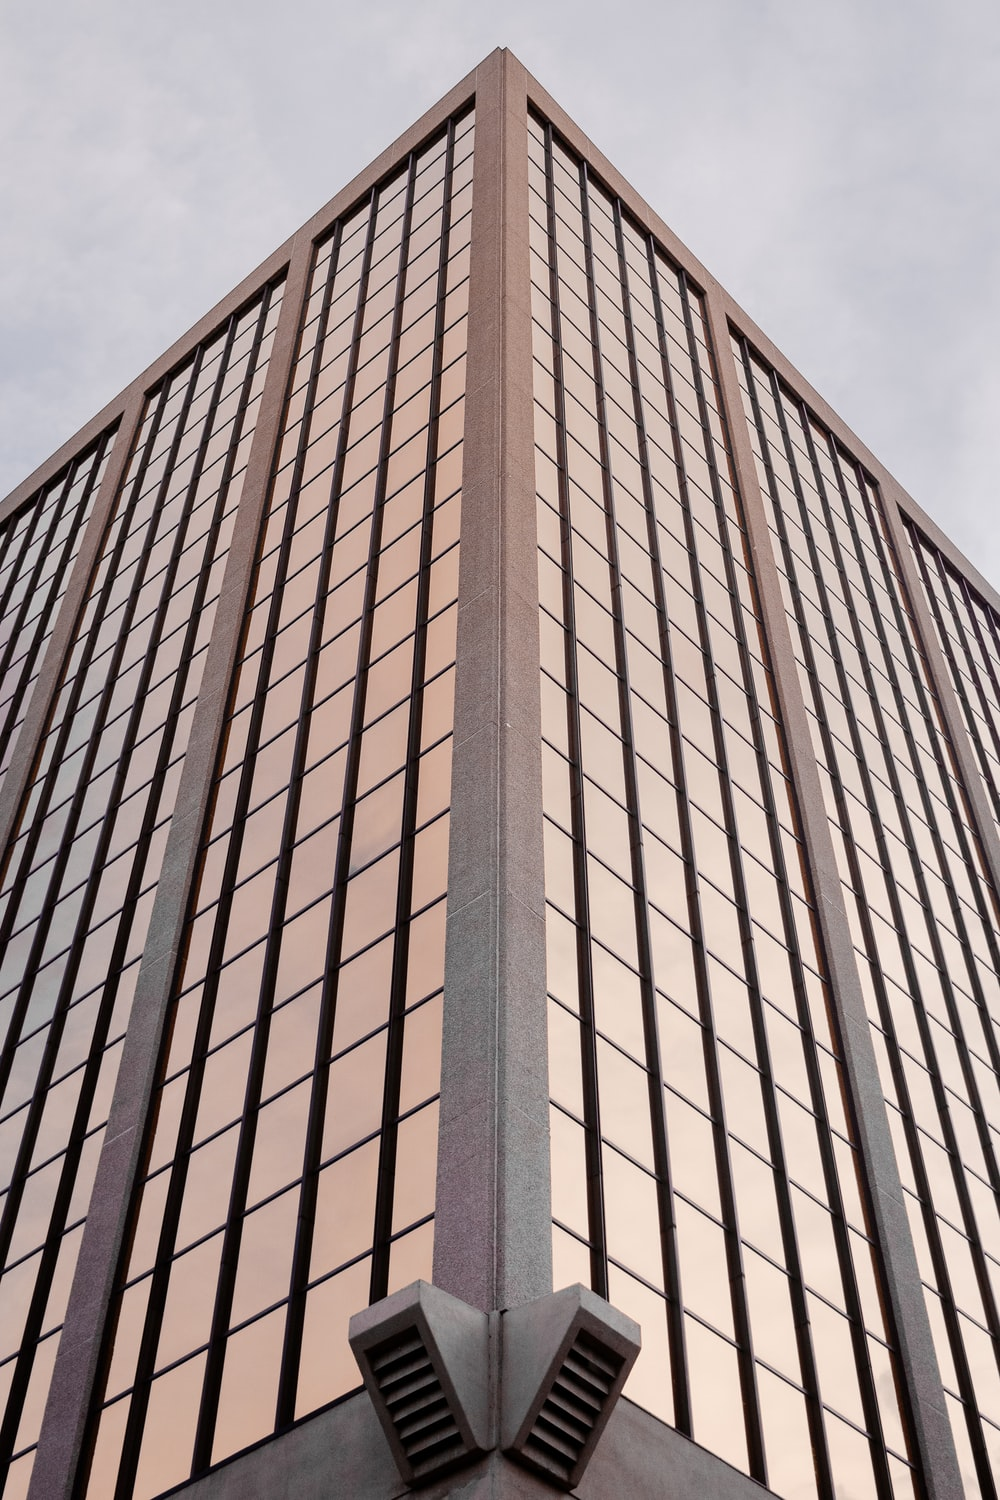 gray curtain-wall building